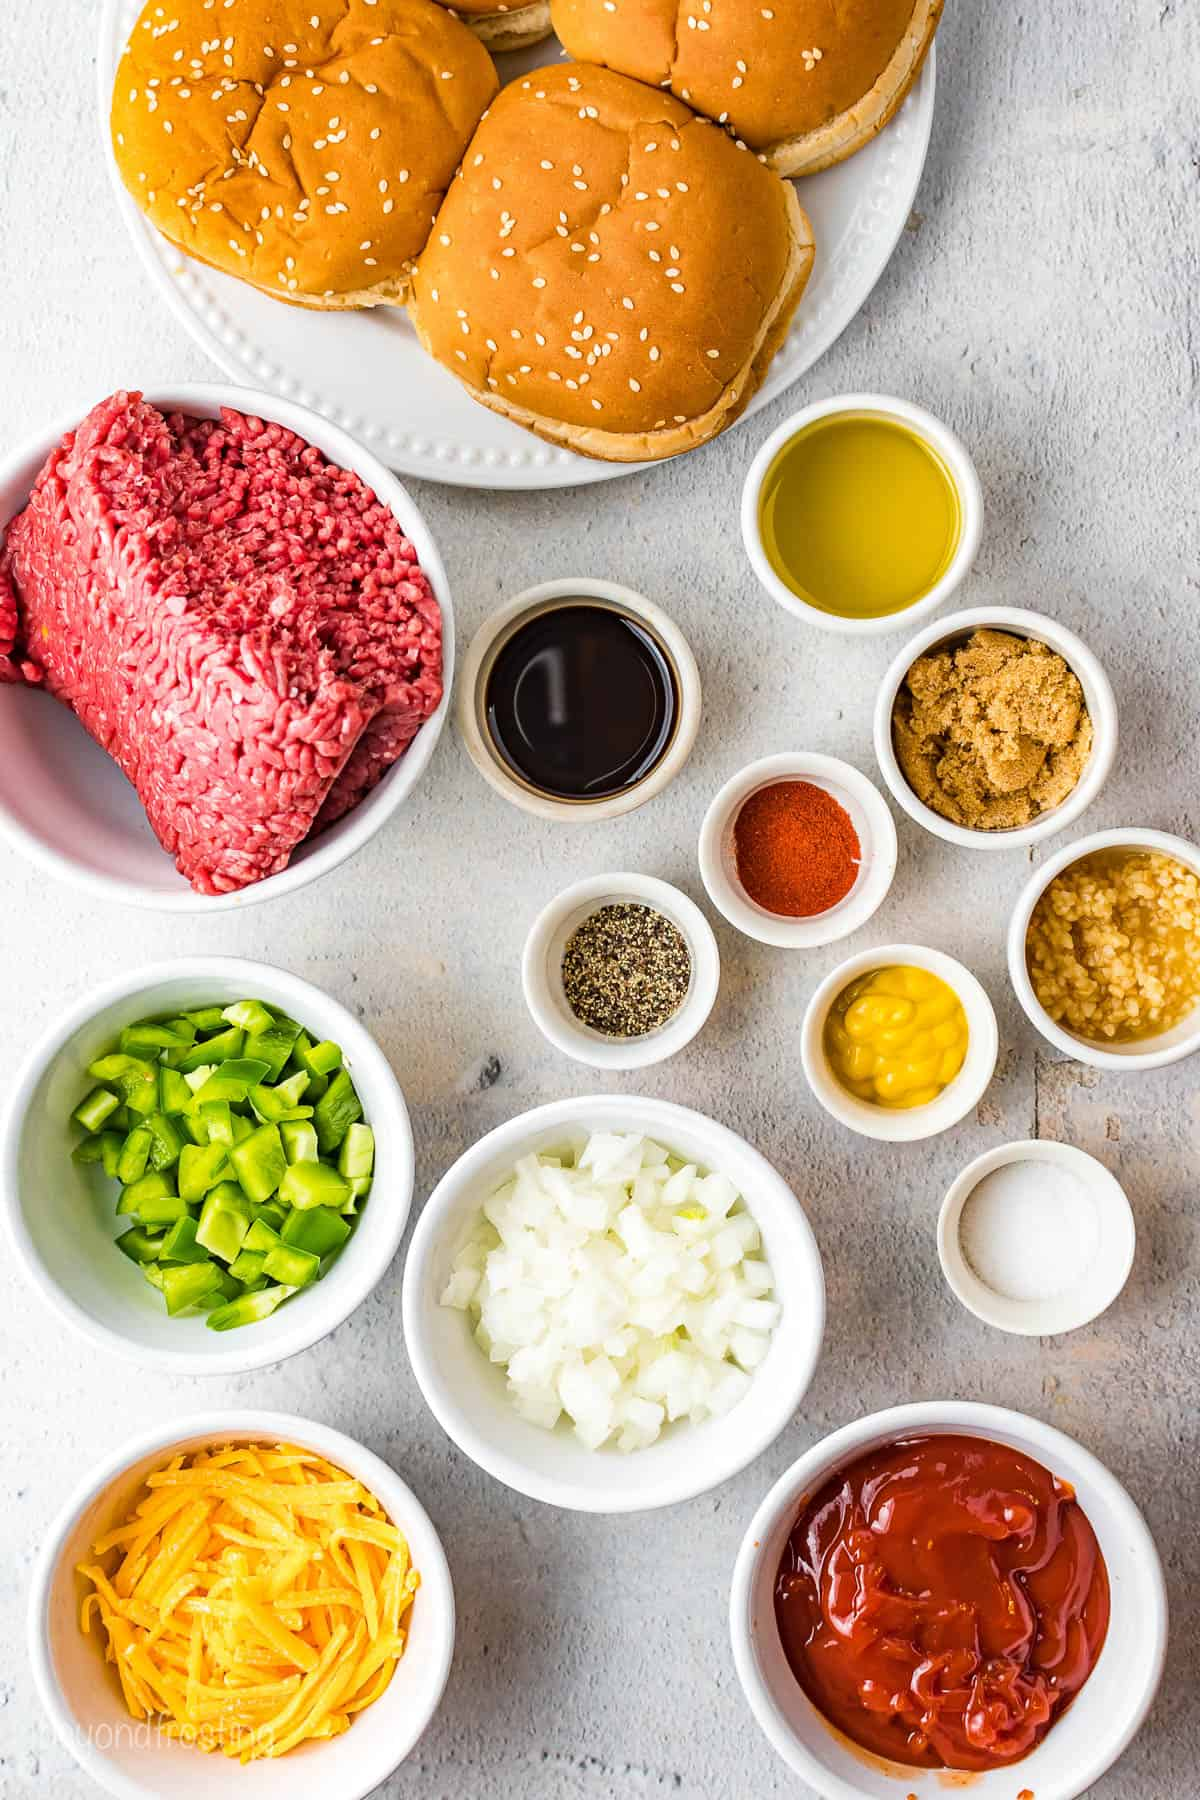 All of the ingredients for these Easy Sloppy Joes.